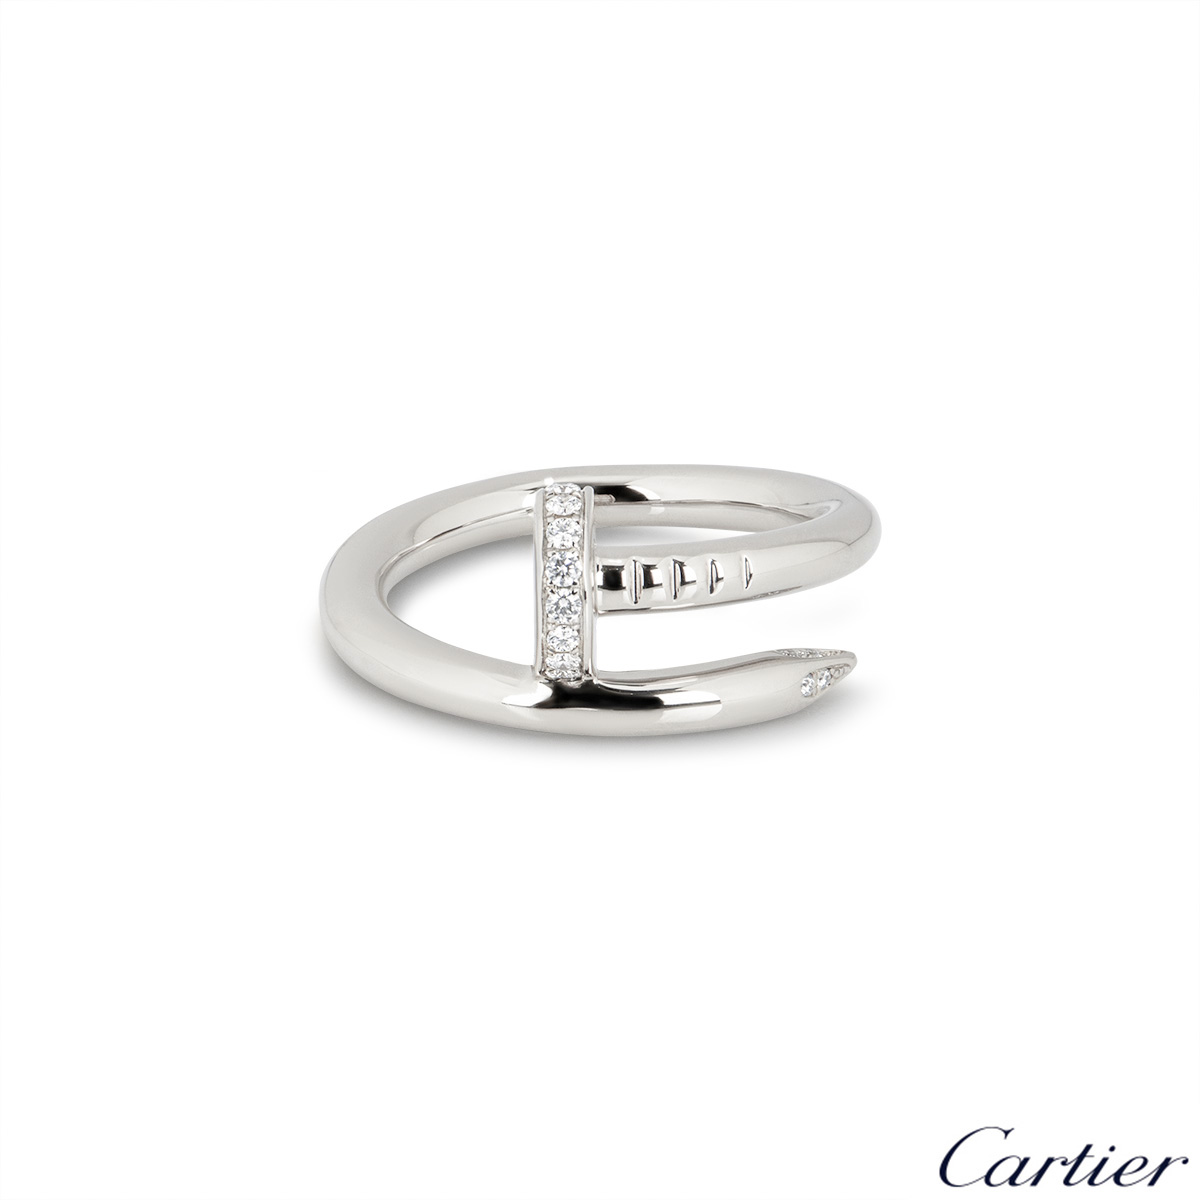 Cartier White Gold Diamond Juste Un Clou Ring Size 52 B4092700